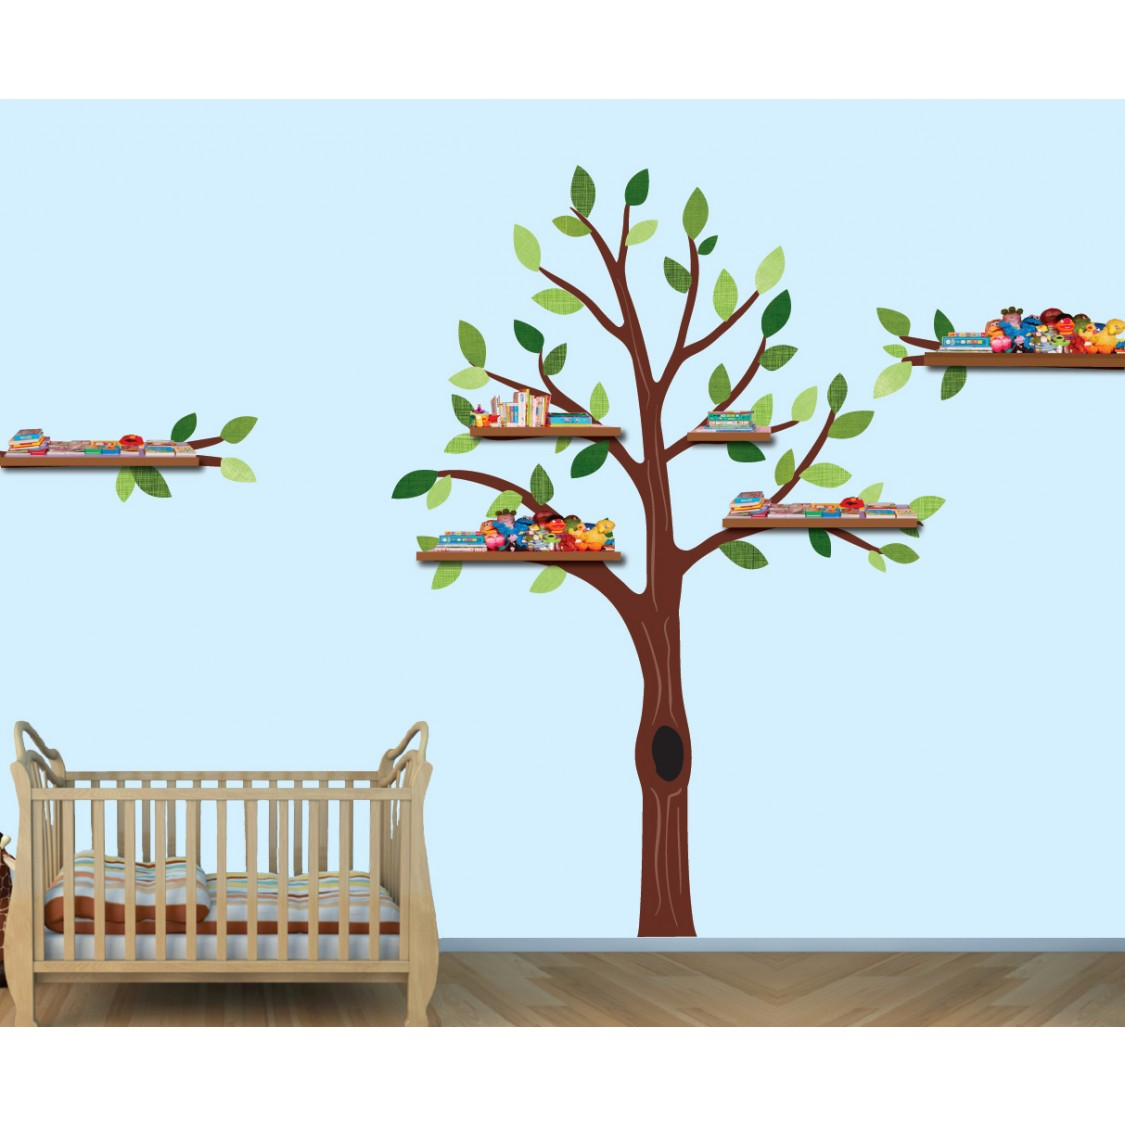 Green Shelving Tree Decals For Play Rooms